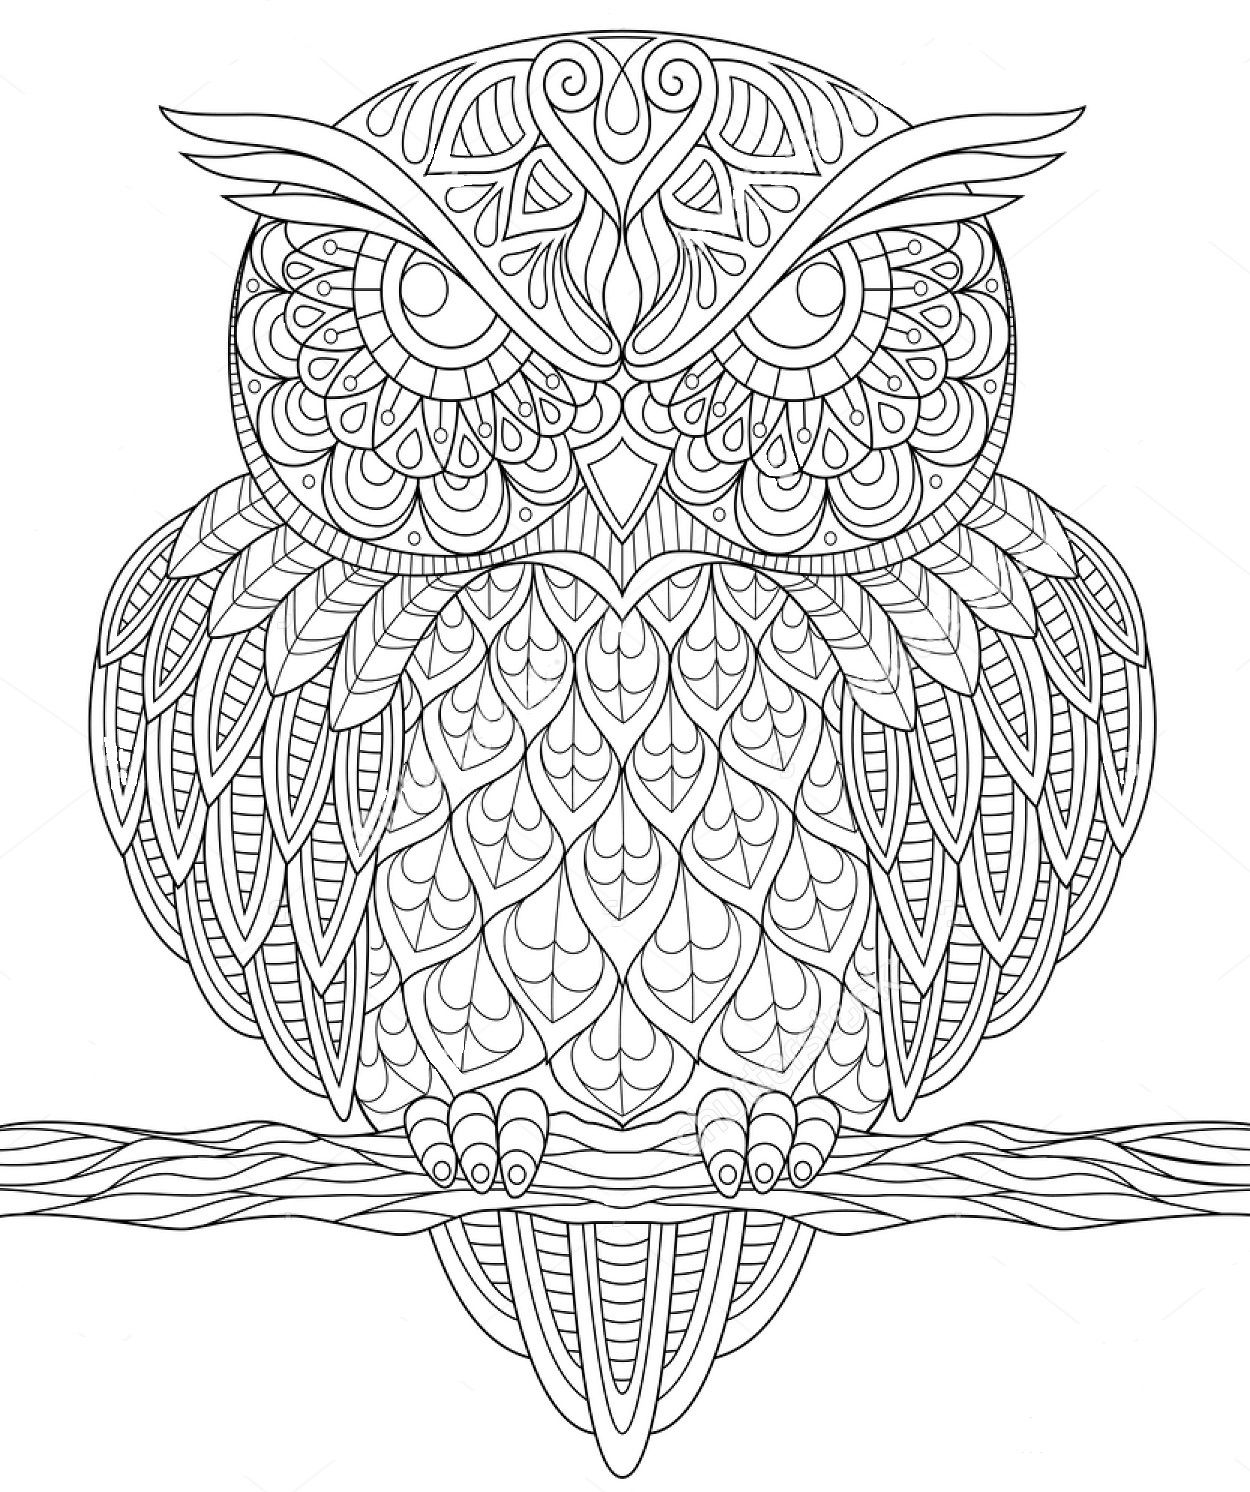 Owl Zentangle Coloring Page Owl Coloring Pages Abstract Coloring Pages Coloring Pages